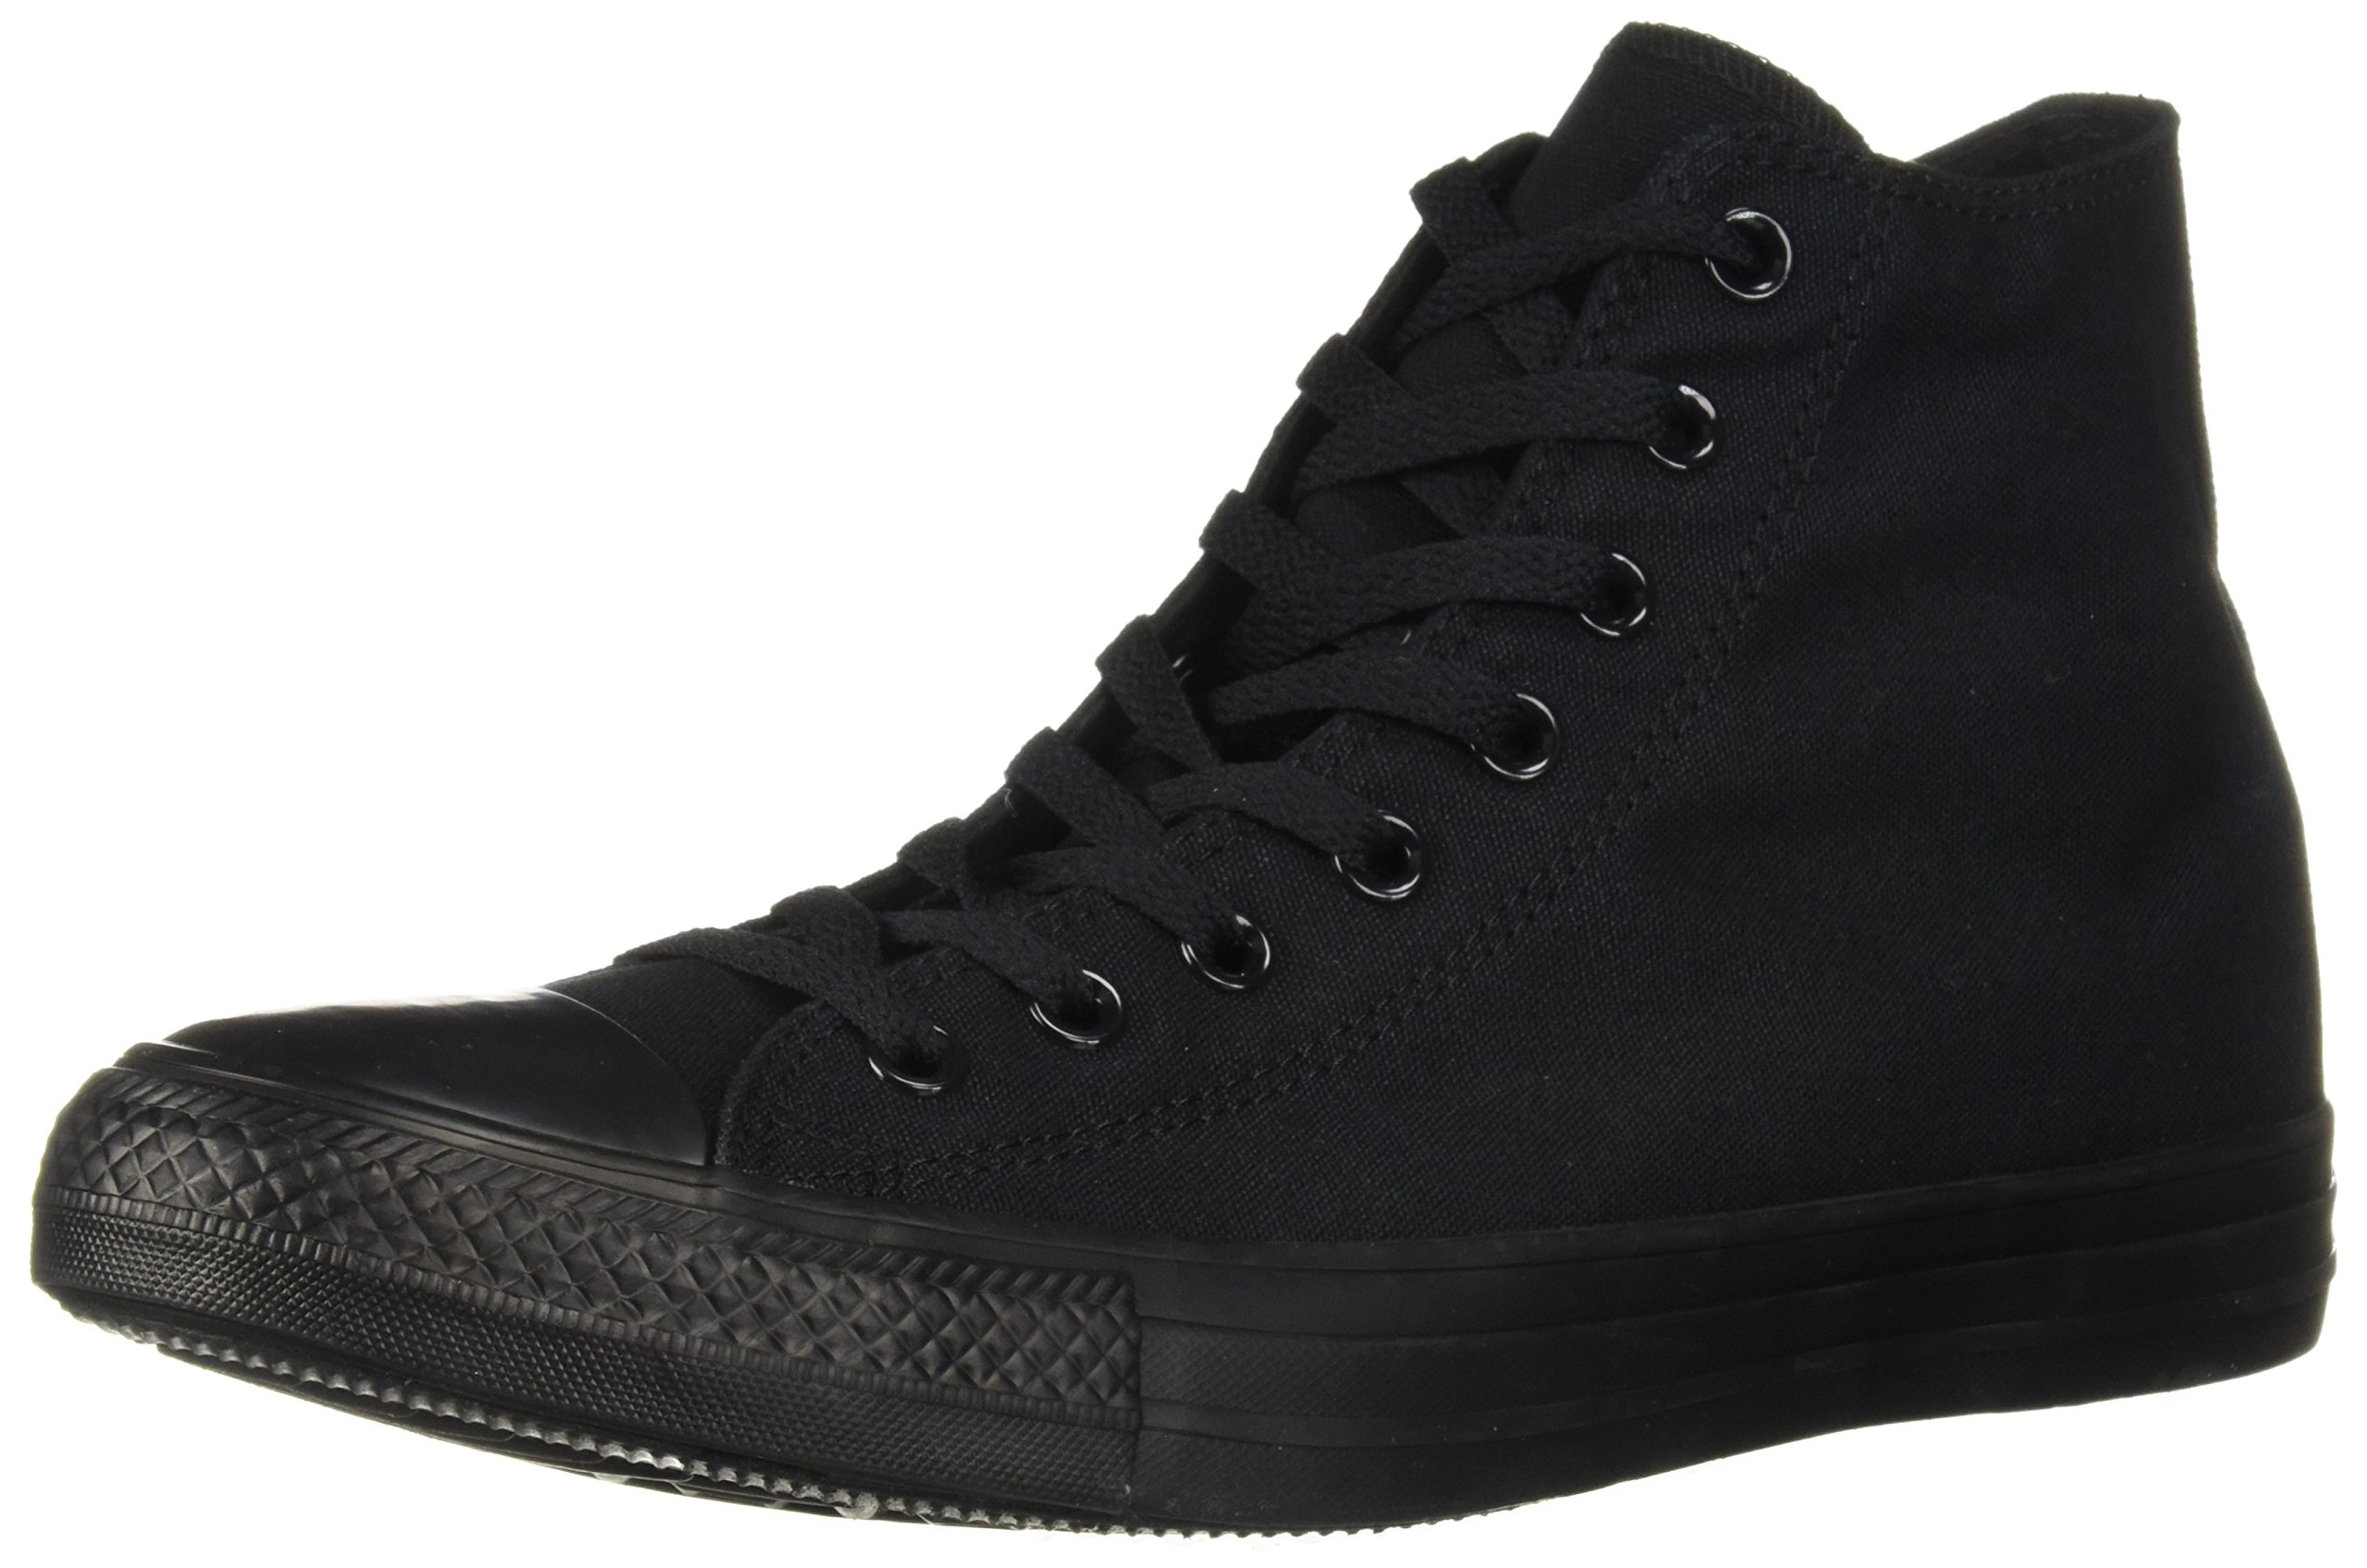 Converse Kid's Chuck Taylor All Star High Top Shoe, black, 2 M US Infant